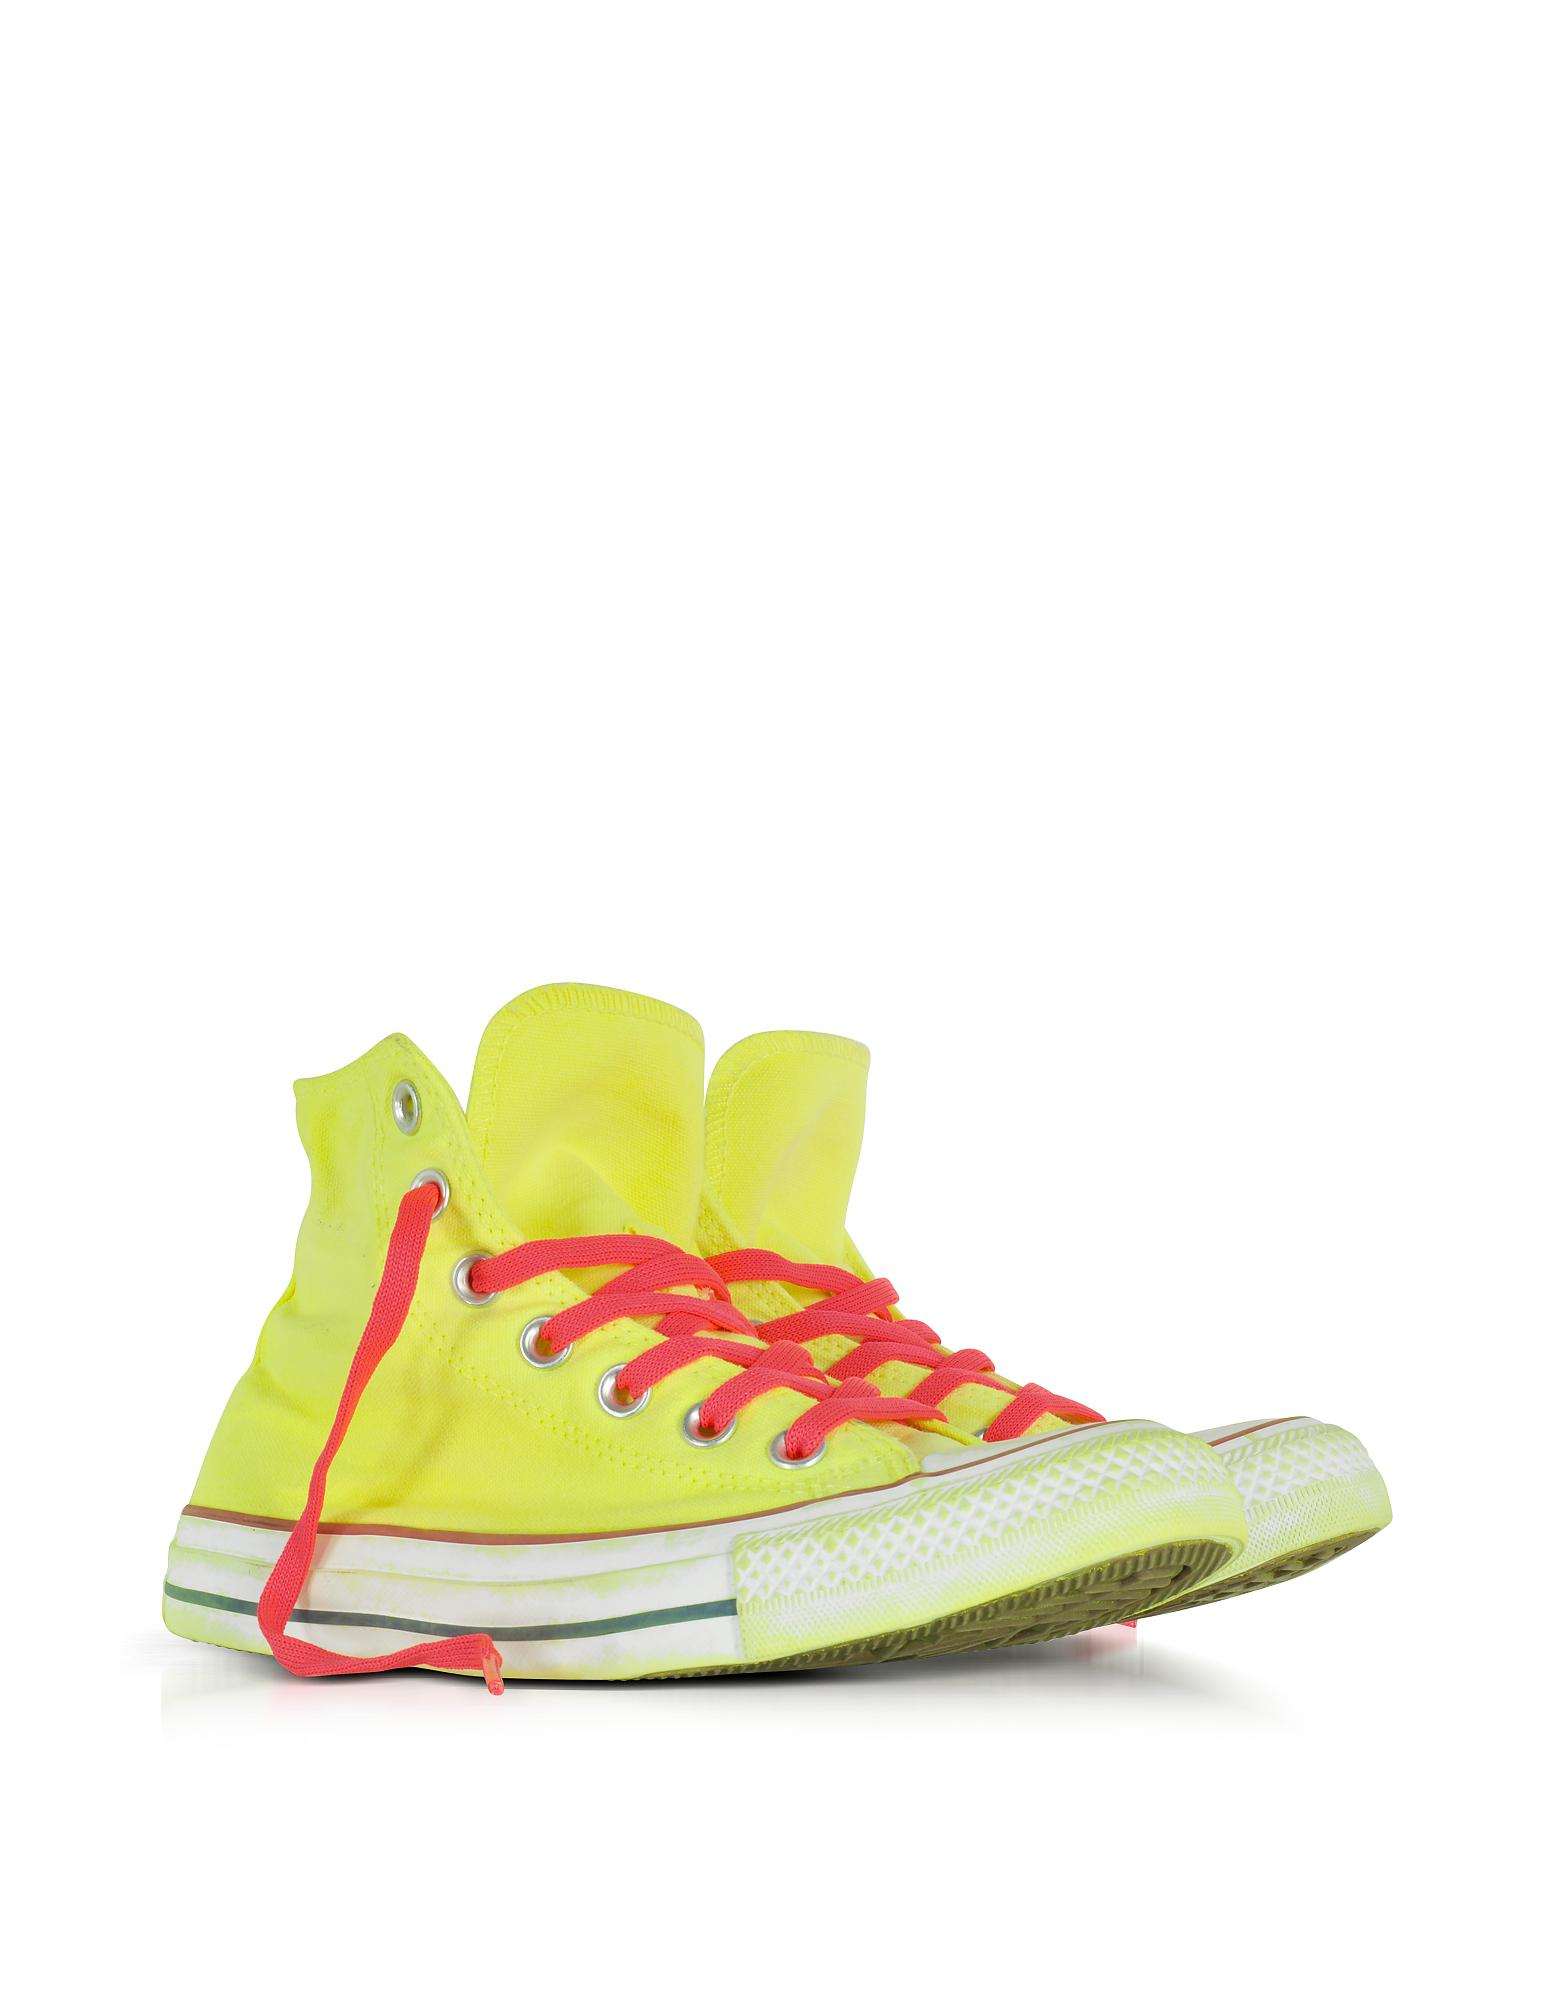 d8976ac81cdc Lyst converse chuck taylor all star hi neon yellow canvas sneakers in  yellow jpg 1560x2000 Lime